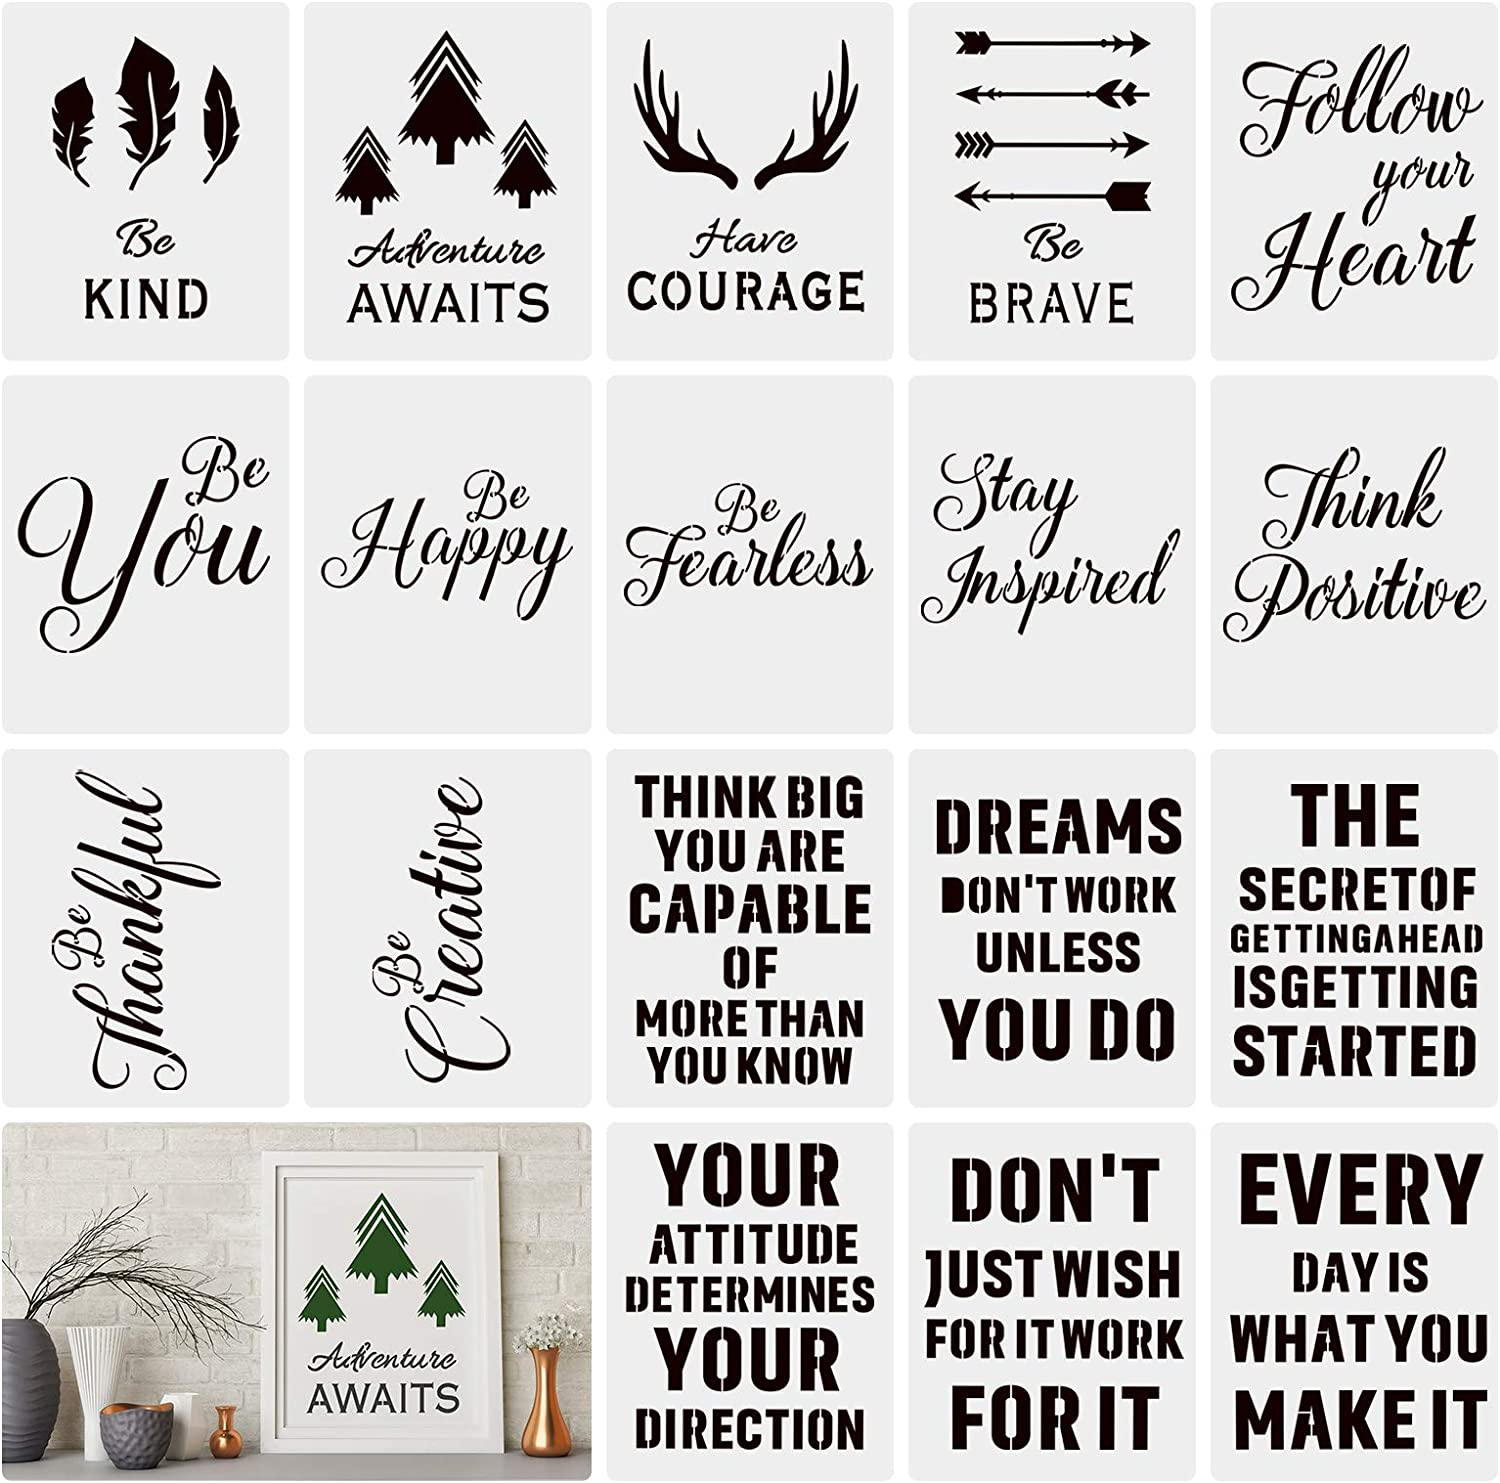 Inspirational Wall Art Décor, 18PCS Plastic Stencils Motivational Quote & Saying Reusable Positive Lettering Painting Poster Templates for DIY Drawing Projects